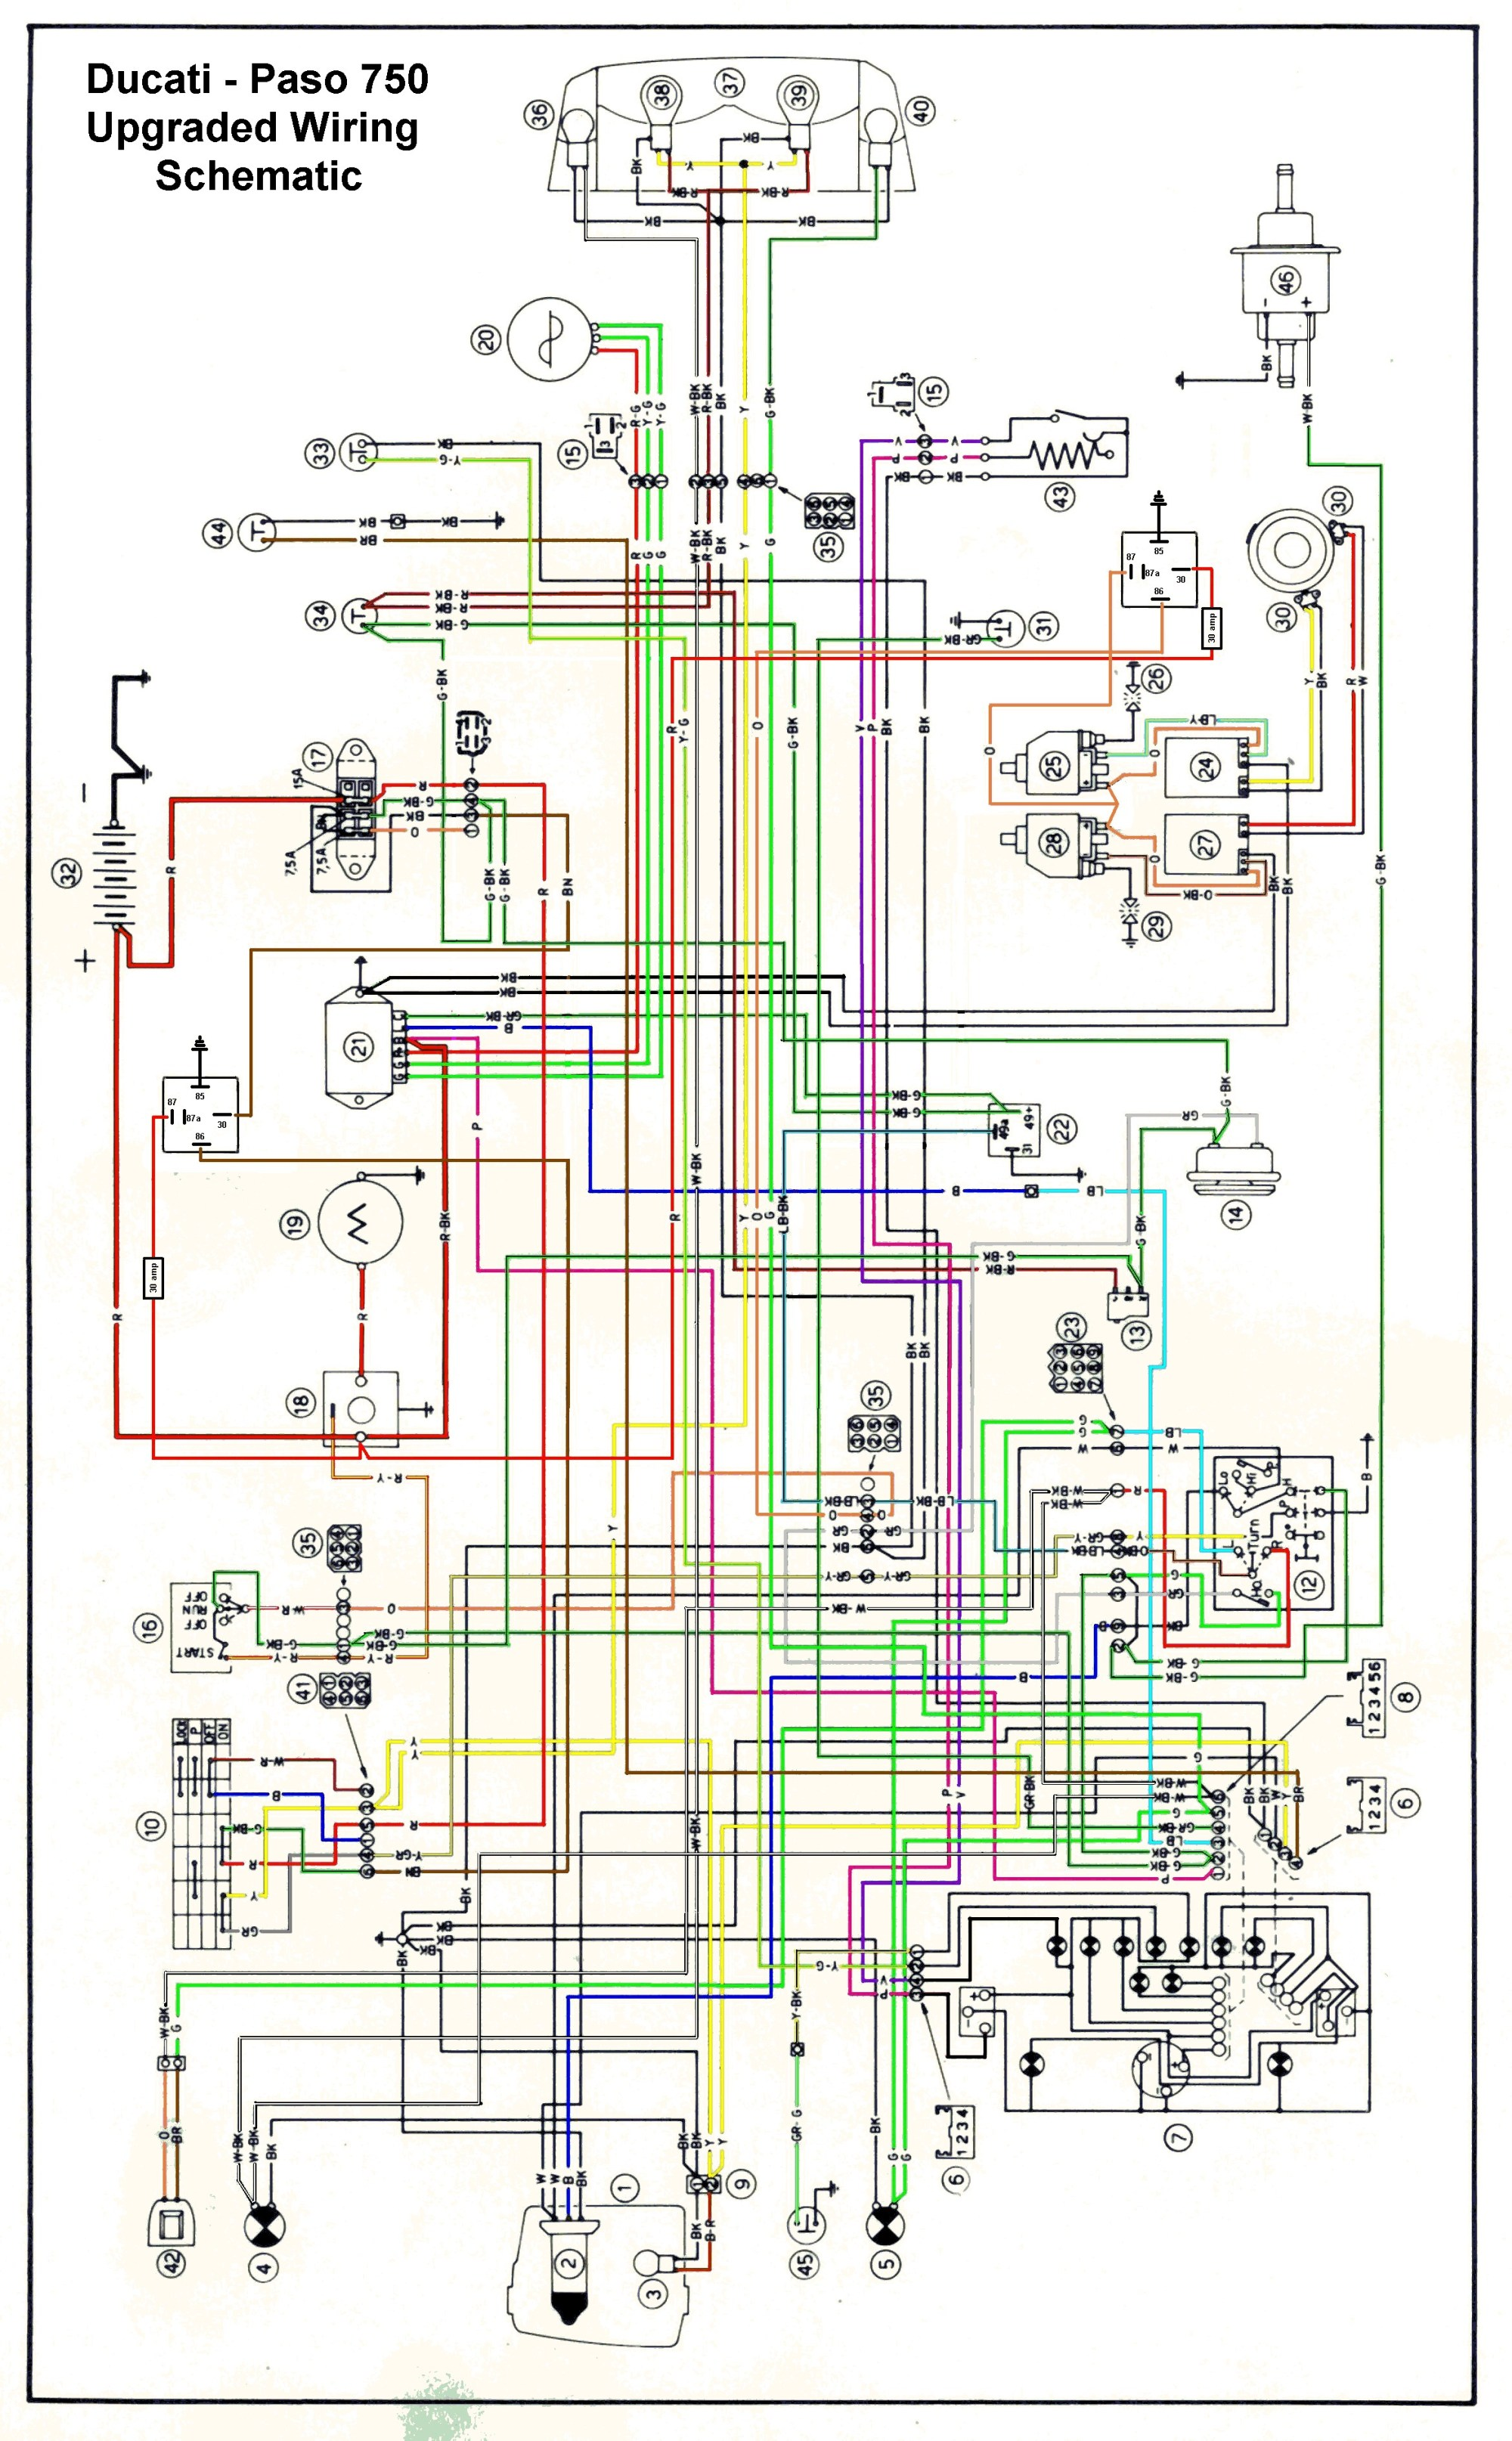 hight resolution of ducati paso wiring diagram wiring library ducati 450 wiring diagram starting to read more about the